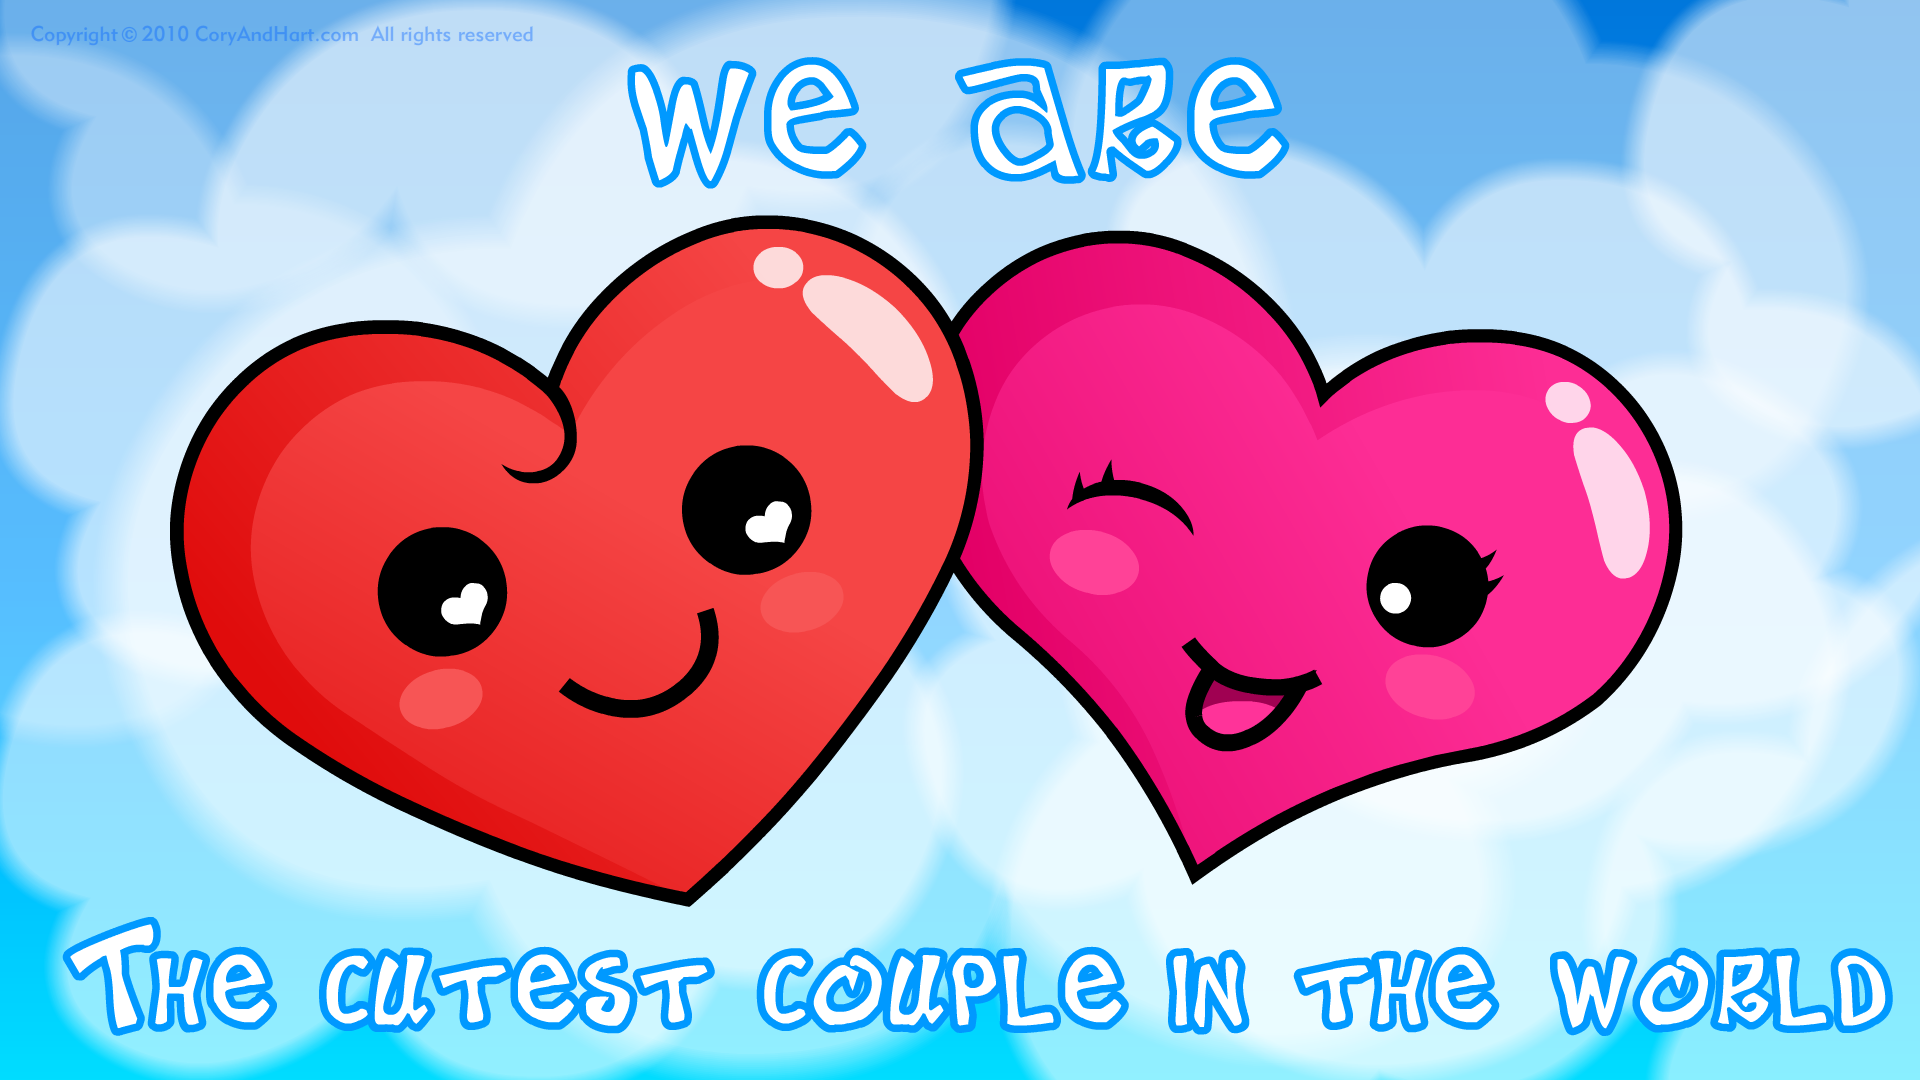 cute Love Wallpaper With Thought : cute Love Wallpapers For Mobile 28 Background - Hdlovewall.com